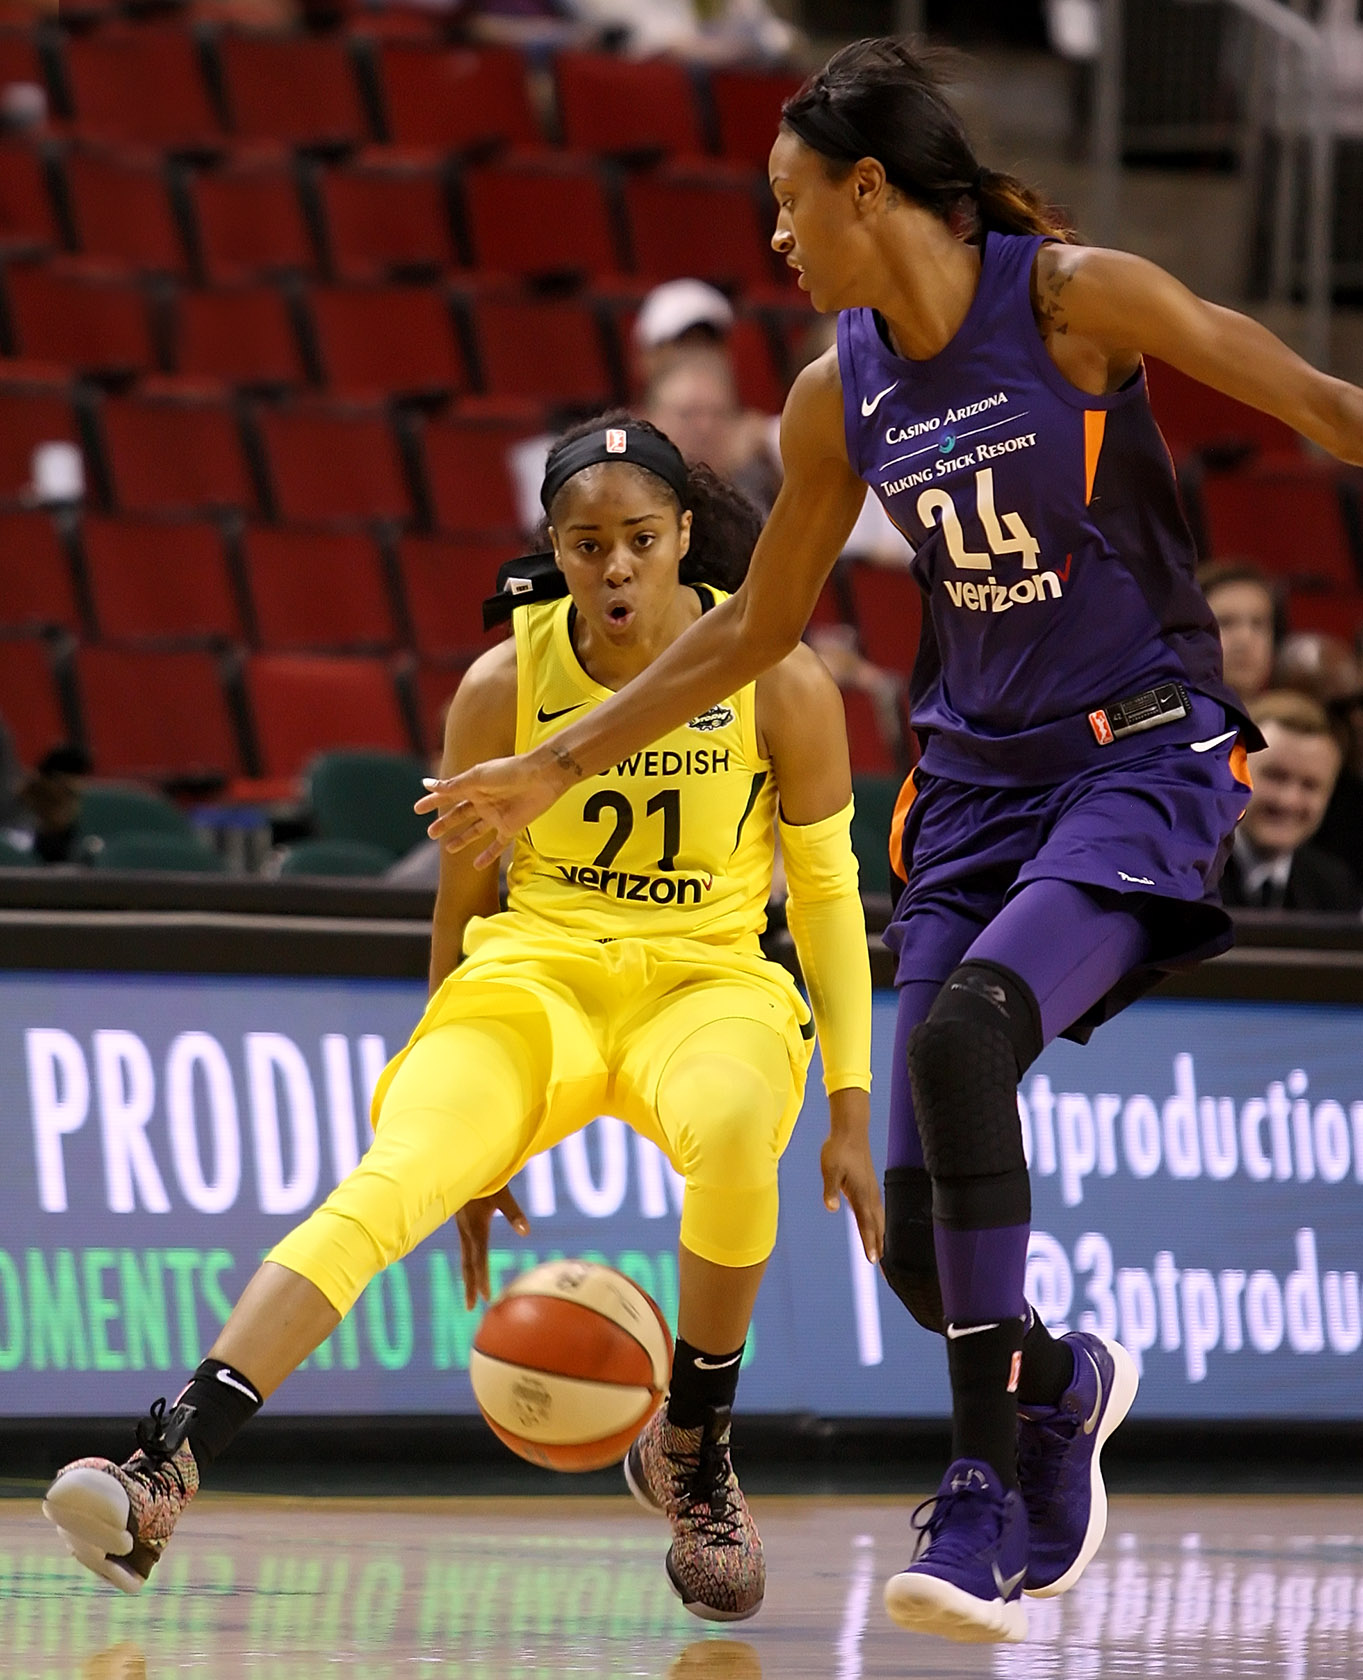 Jordin Canada of the Storm dribbles the ball between her legs against the Mercury's DeWanna Bonner.